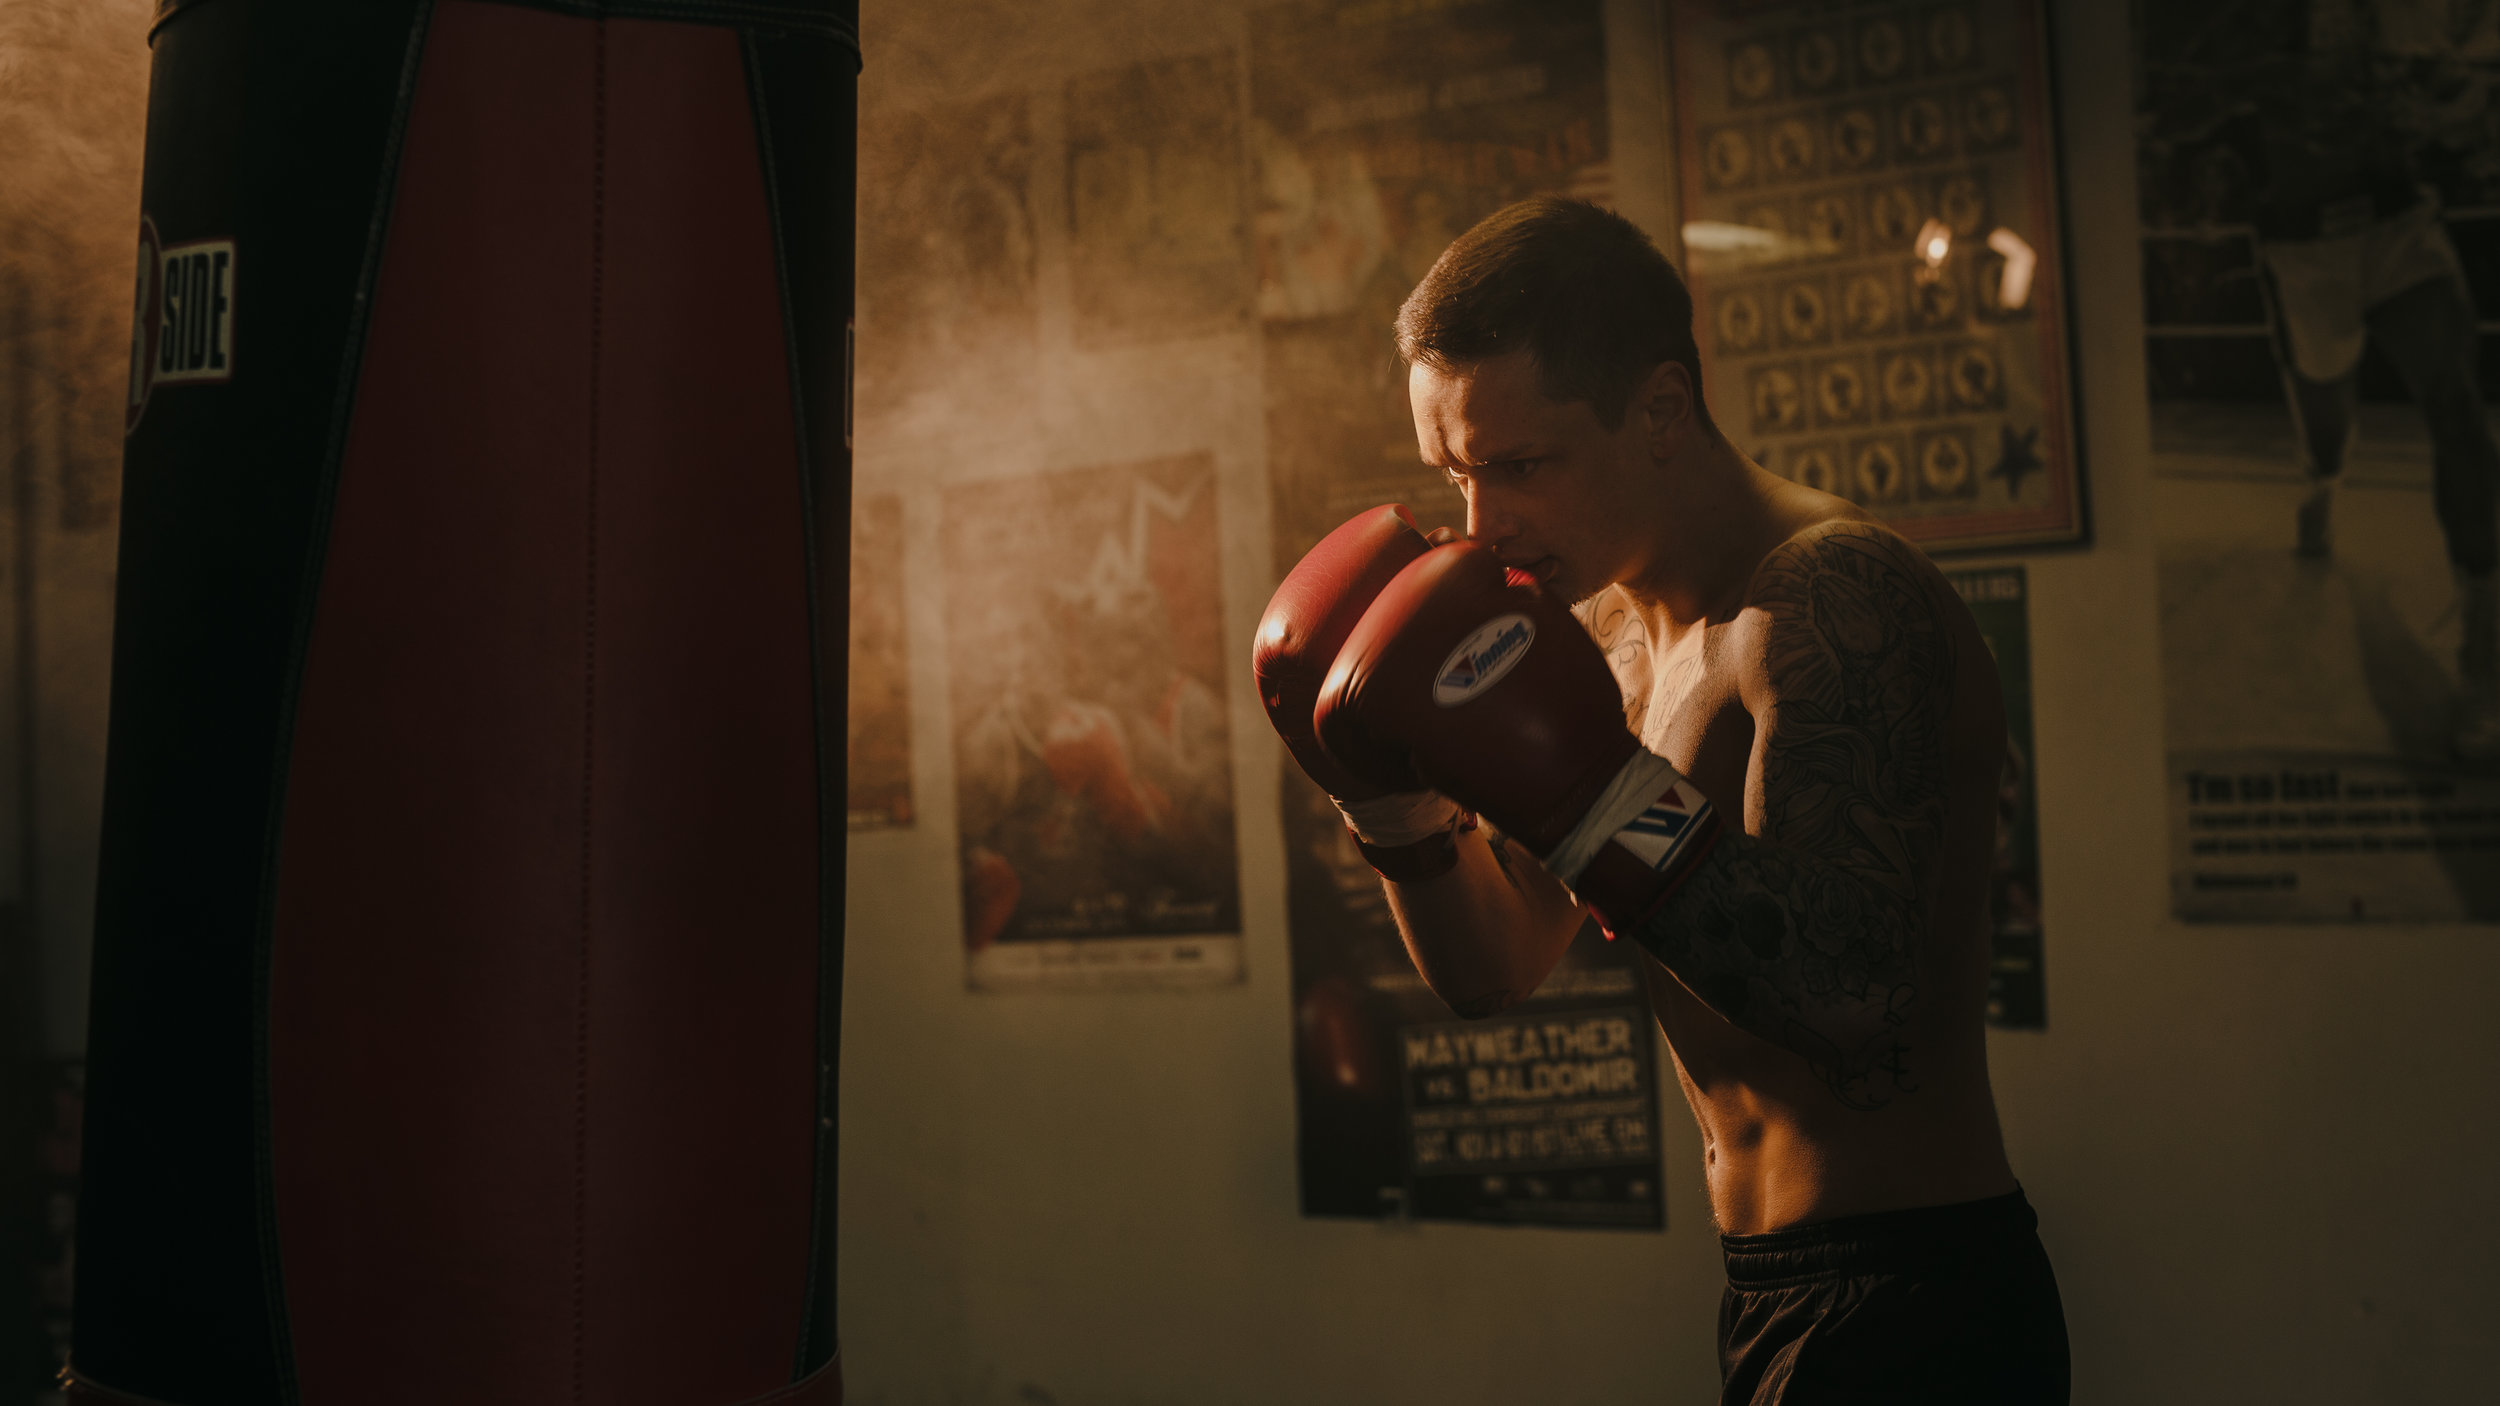 Boxing - A canon c200 test